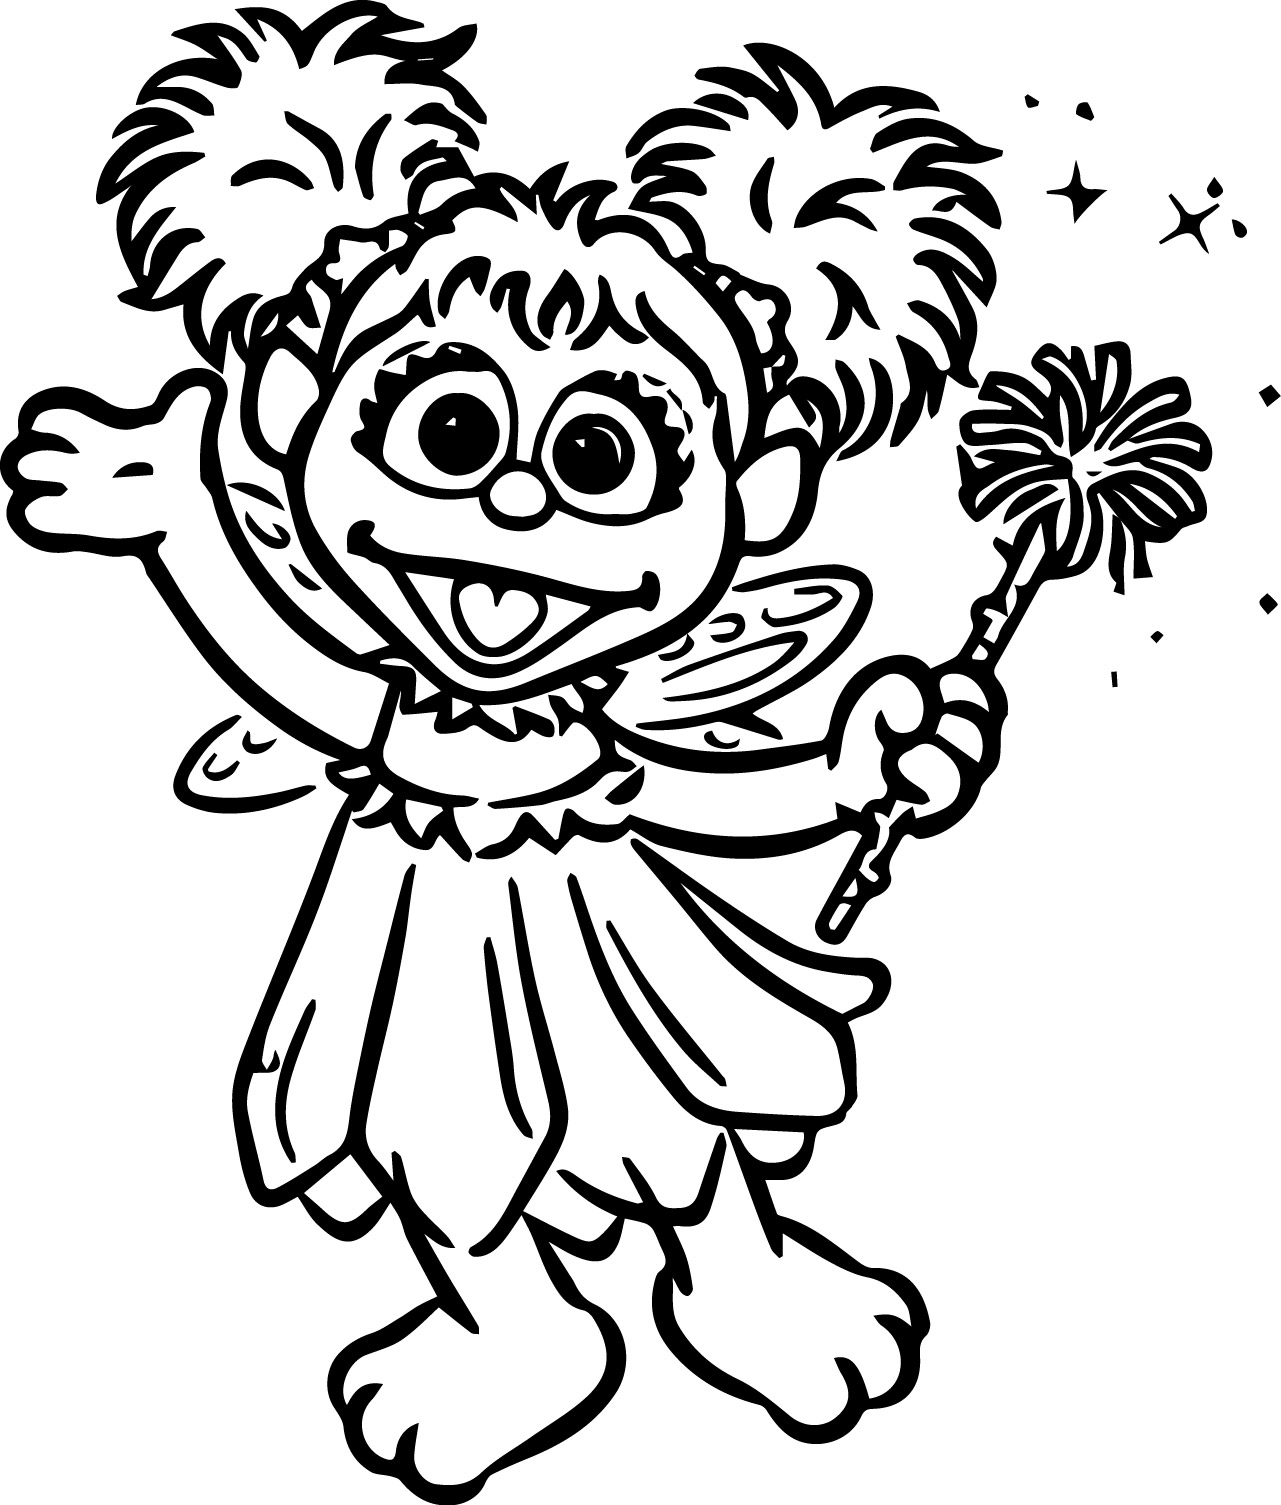 Coloring Pages Abby Cadabby Coloring Page abby cadabby coloring pages wecoloringpage pages